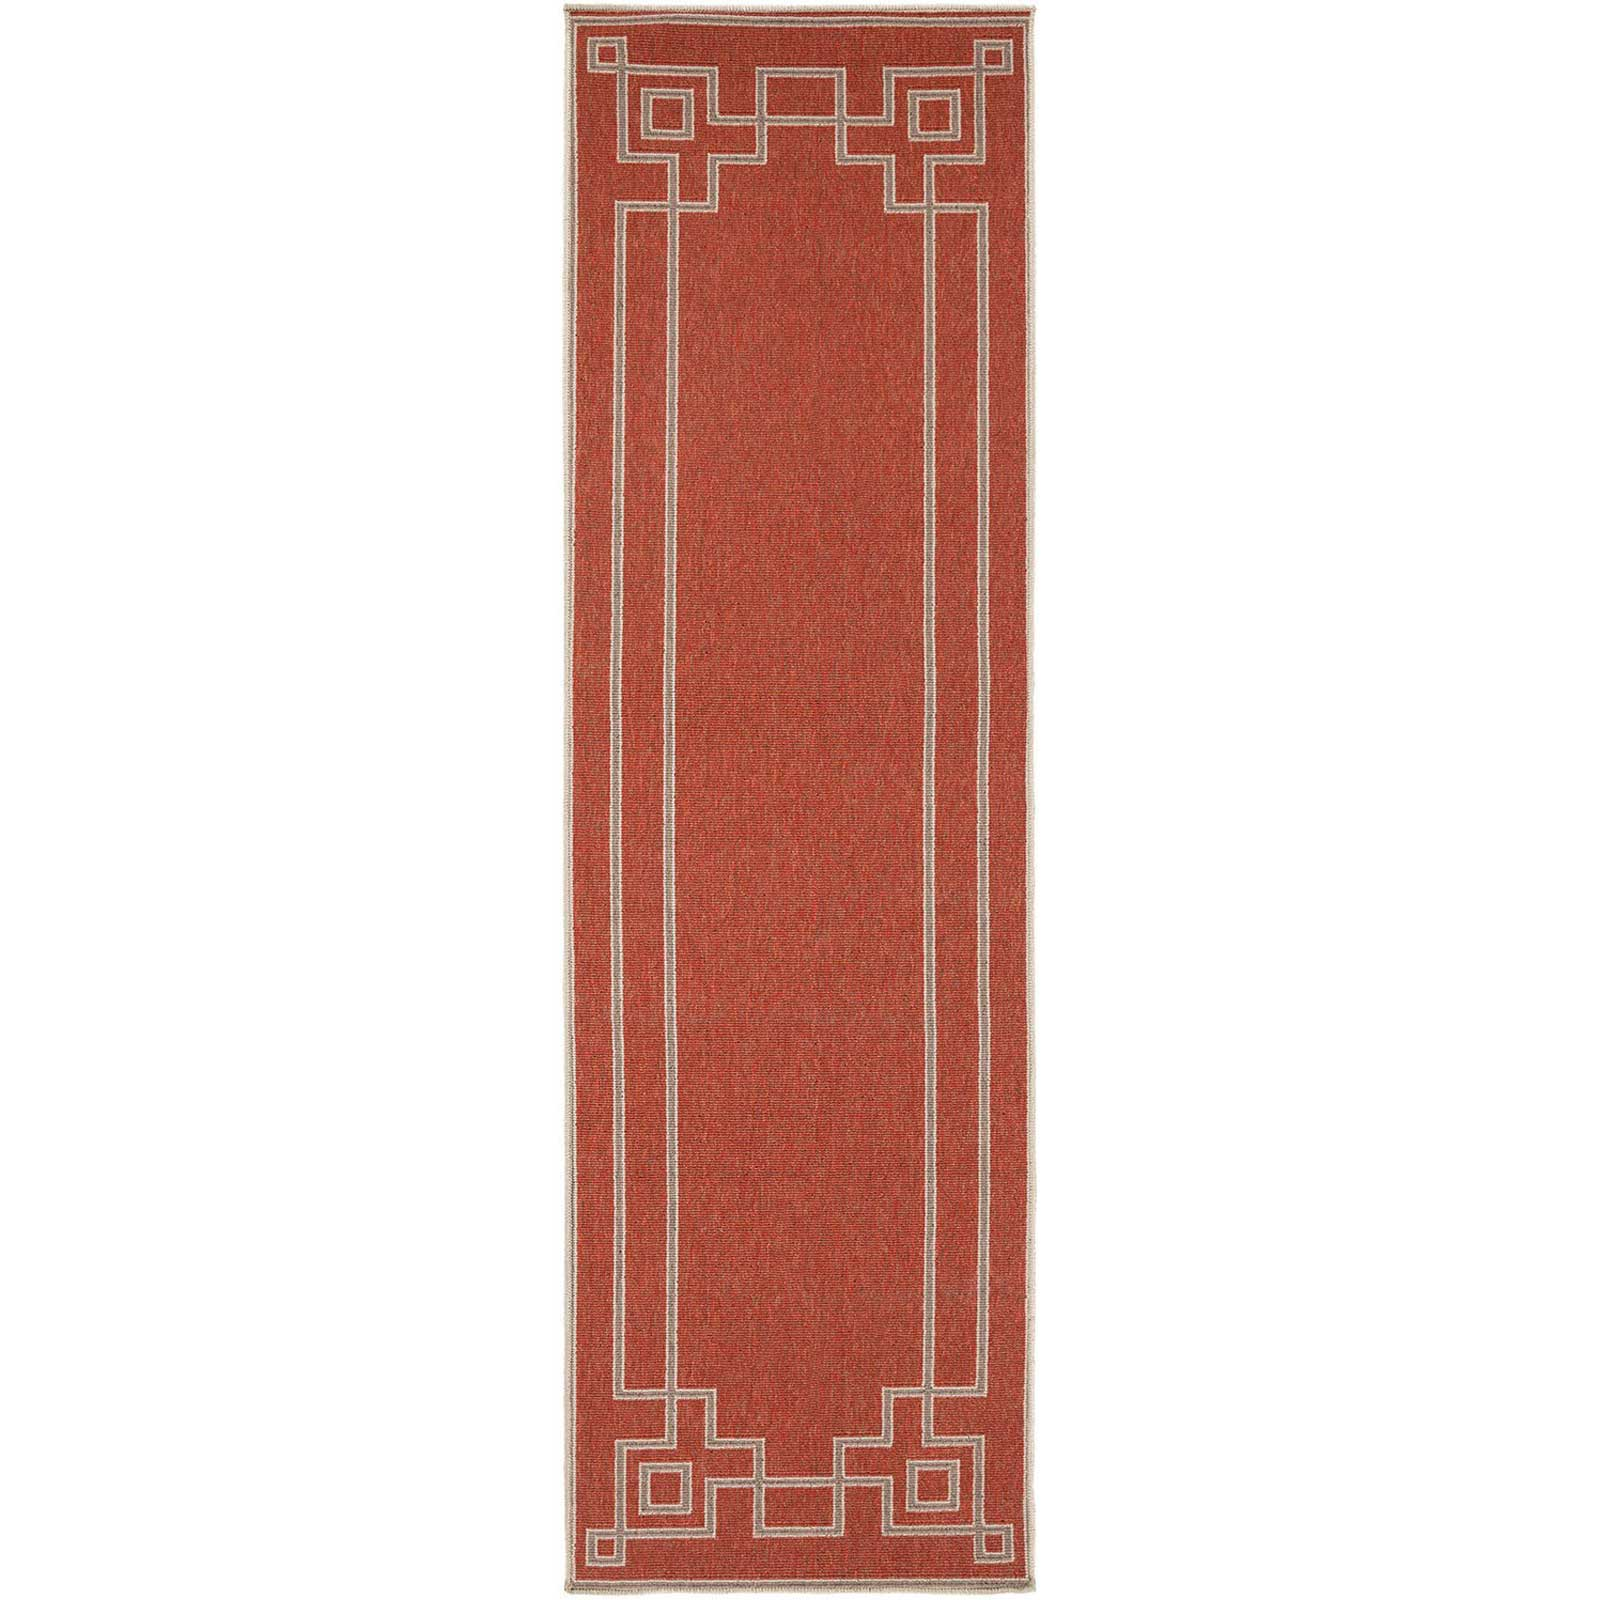 Alfresco Cherry/Taupe Runner Rug